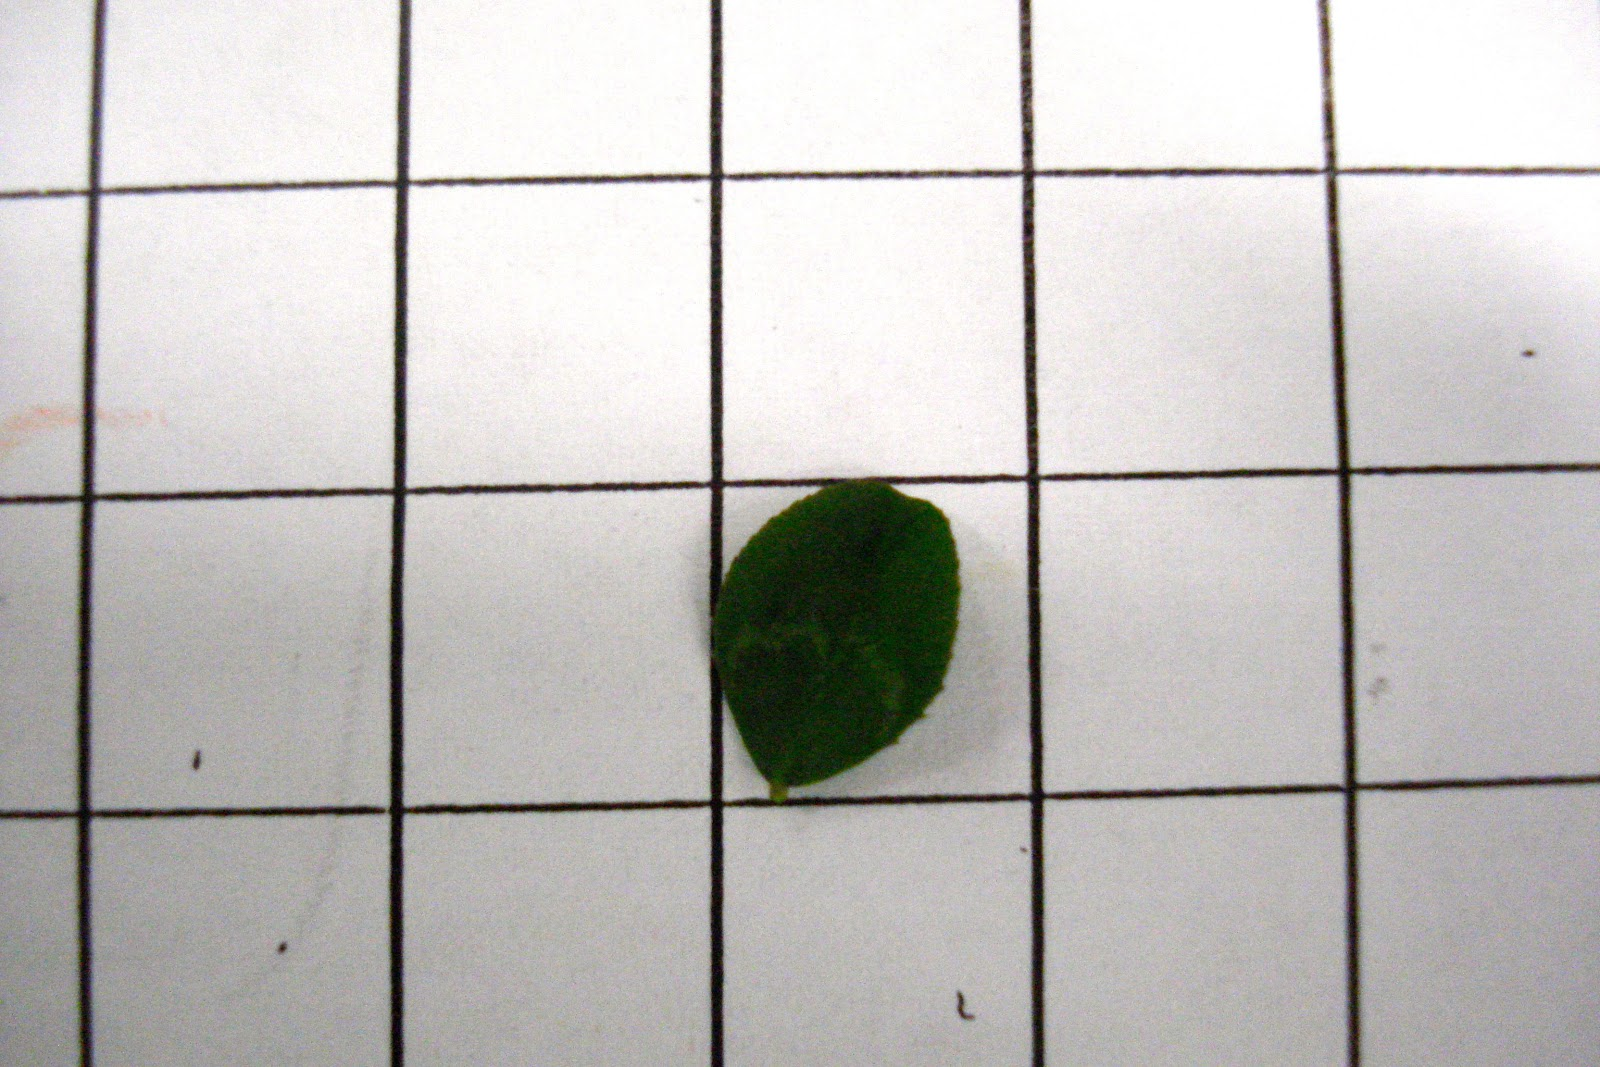 how to find the area of a leaf